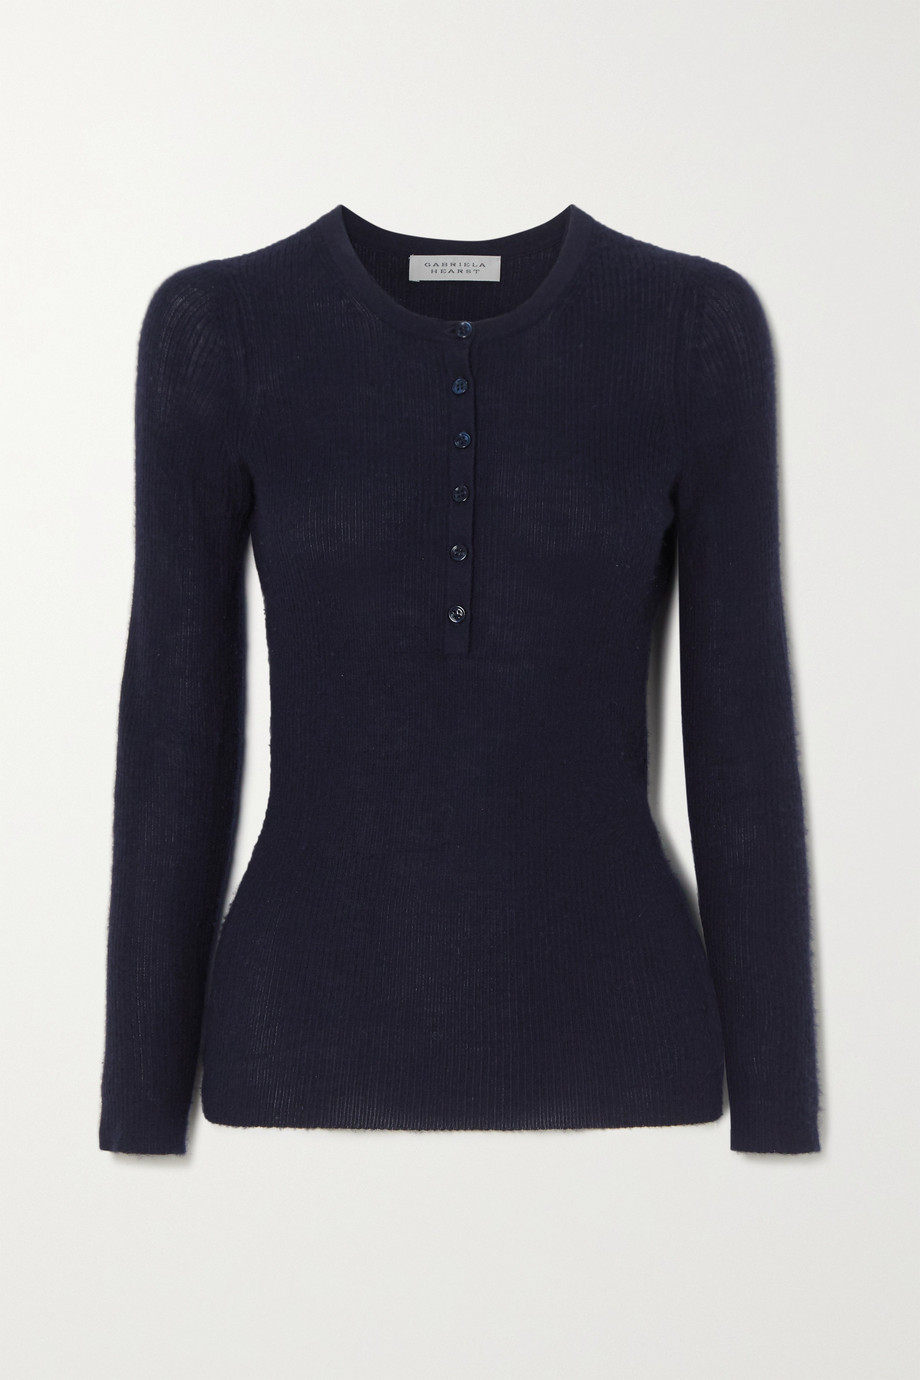 Gabriela Hearst Julian ribbed cashmere and silk-blend top